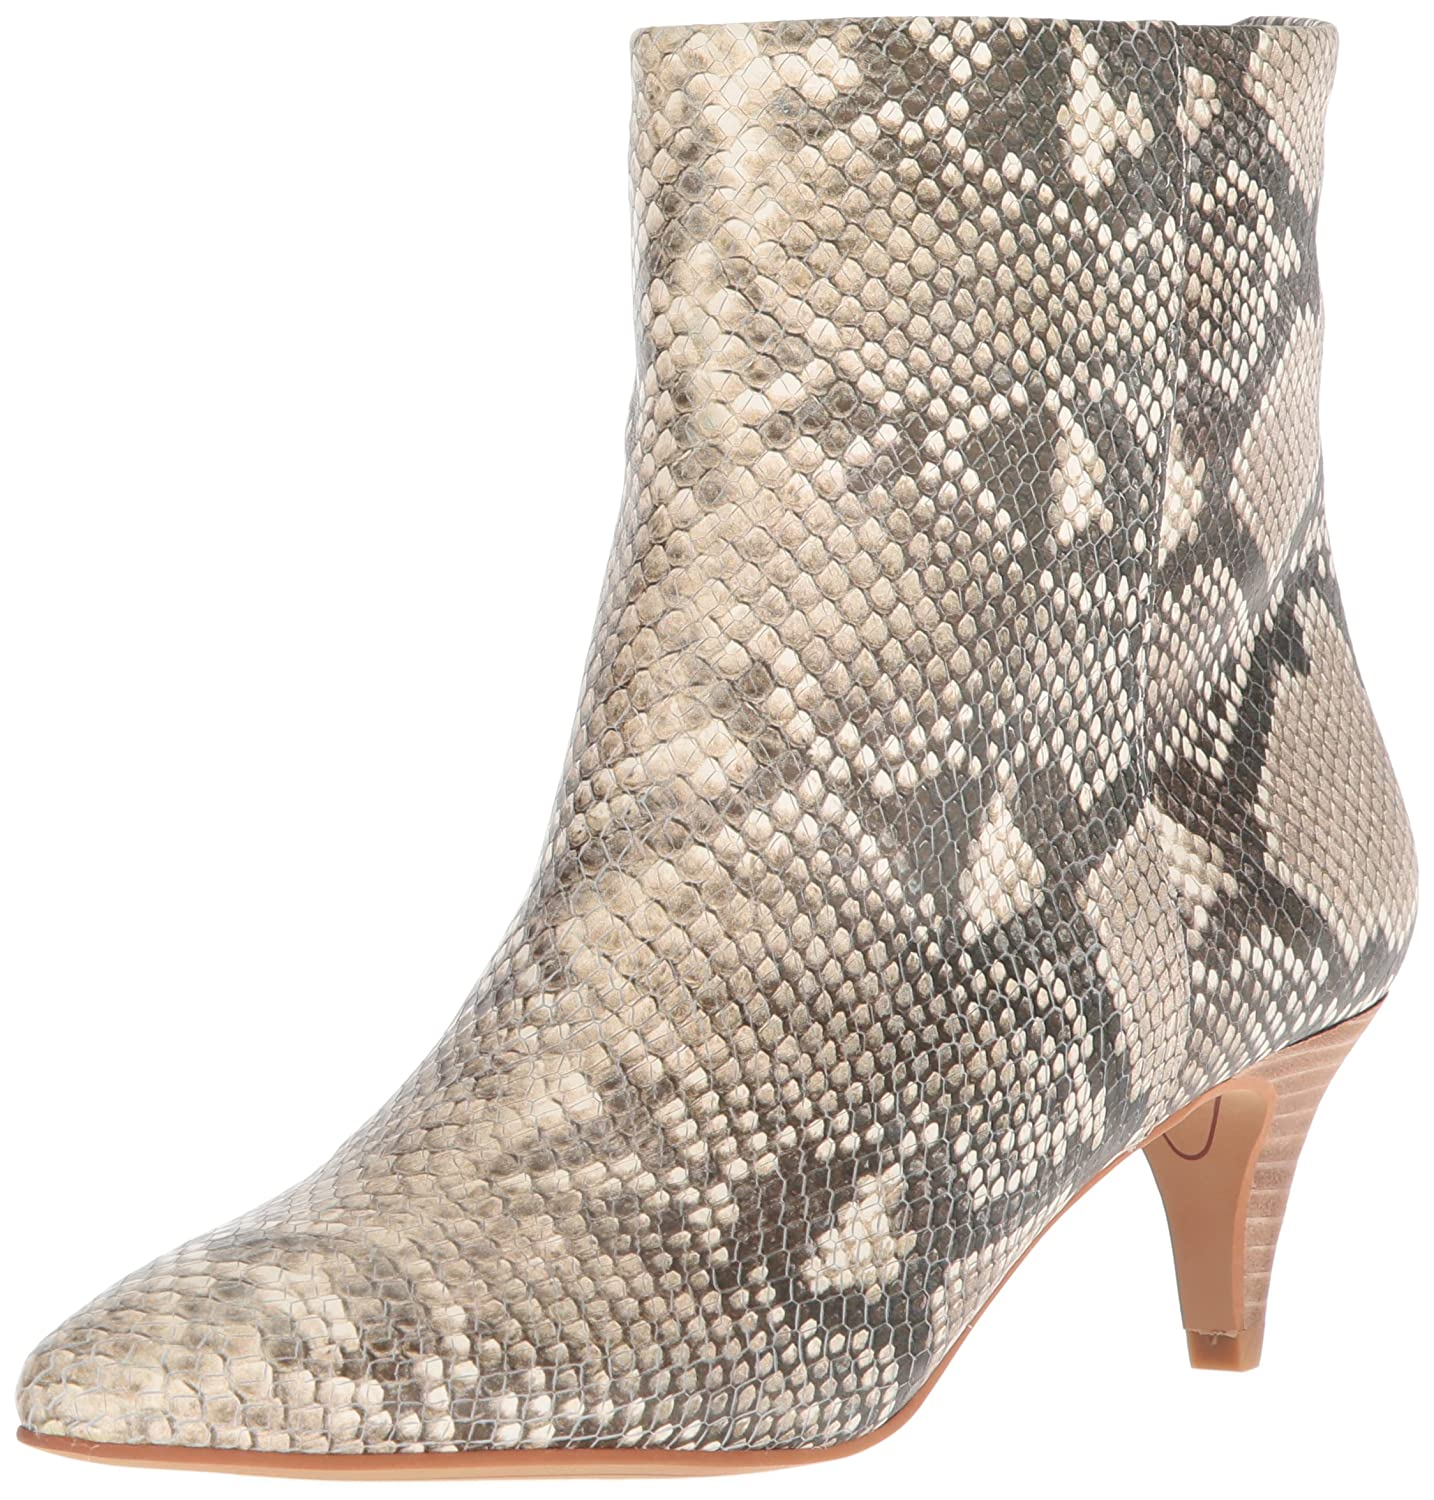 Dolce Vita Women's Deedee Ankle Boot B079Q2KRBX 8.5 B(M) US|Snake Print Embossed Leather